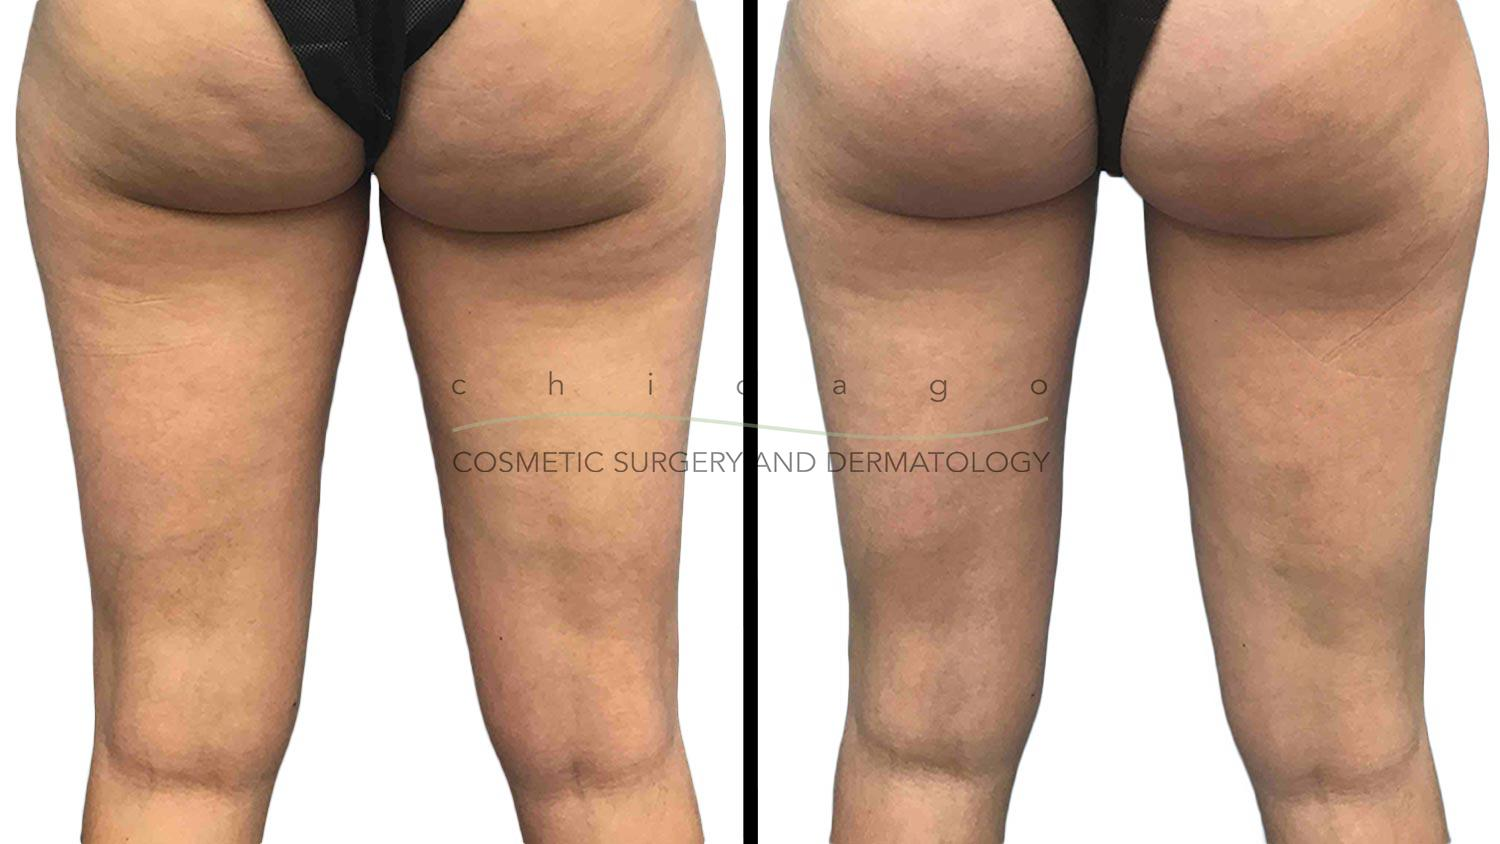 Coolsculpting for Inner Thighs with Brittany Rank, PA-C